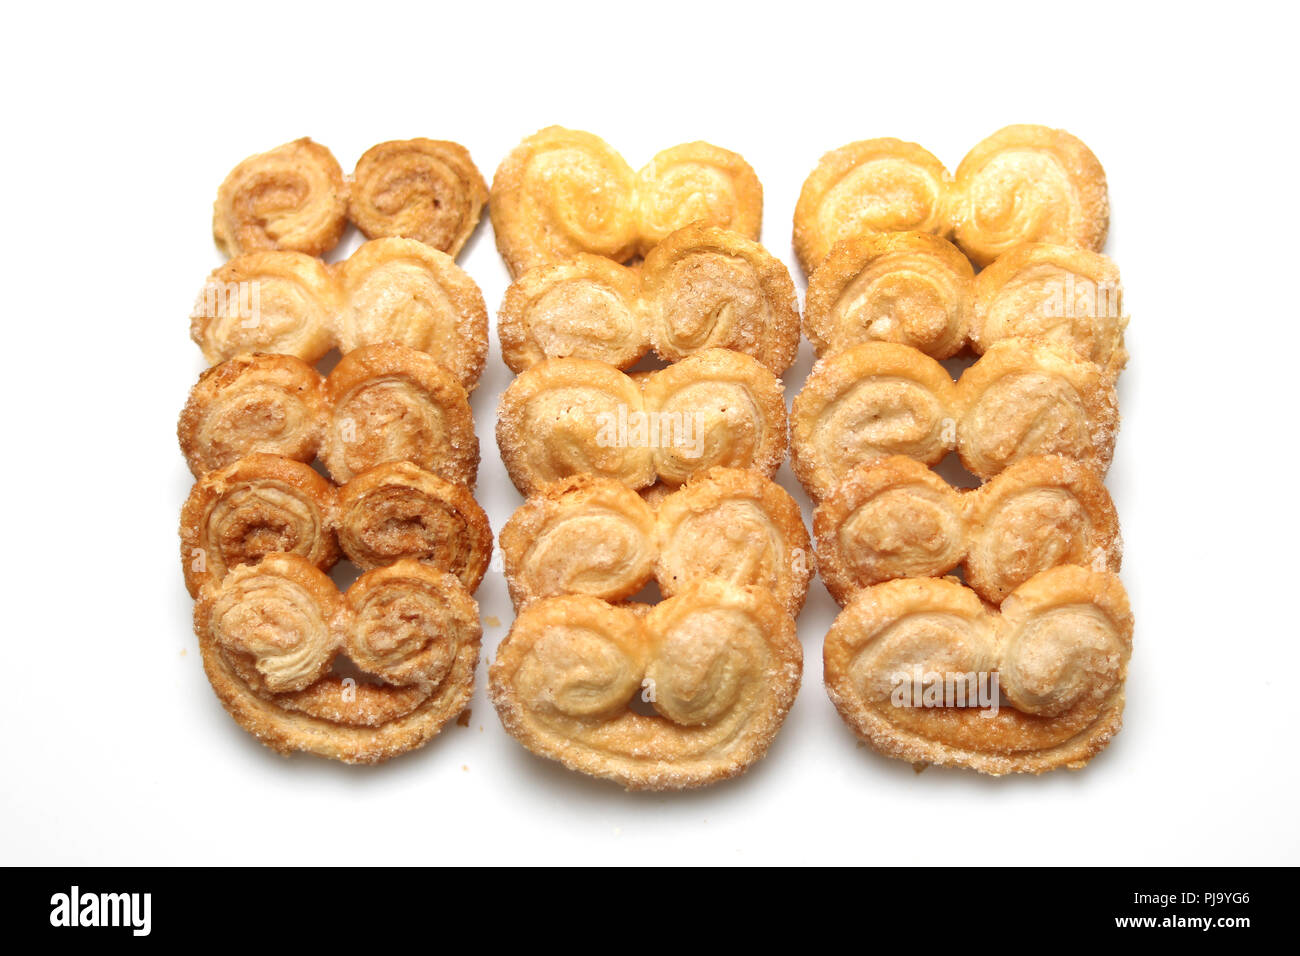 Typical sweet cookies from Argentina called palmeritas. Shot taken on a white background - Stock Image